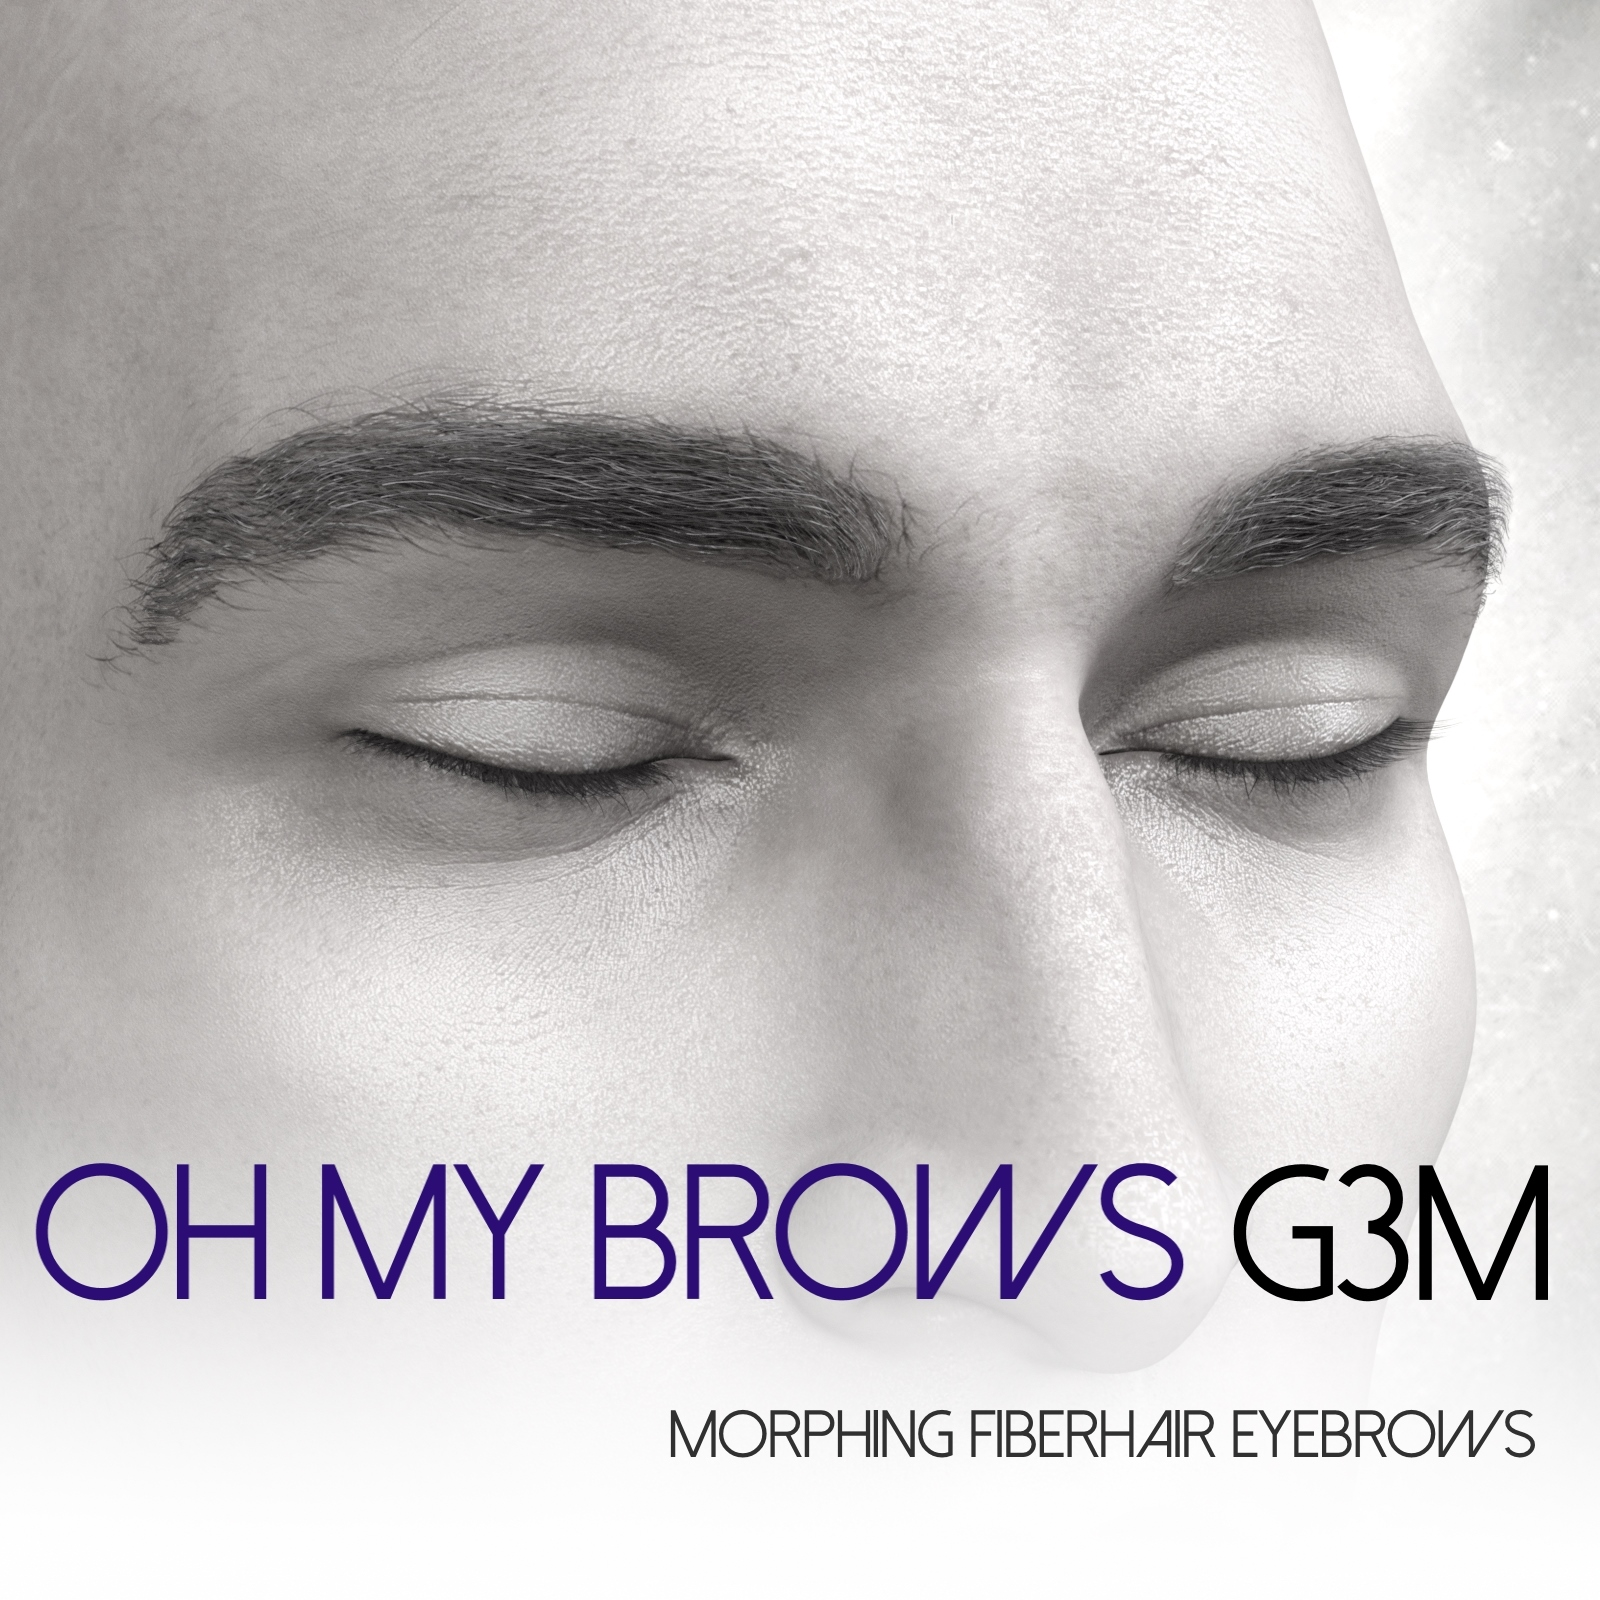 Oh My Brows Morphing Eyebrows for Genesis 3 Male